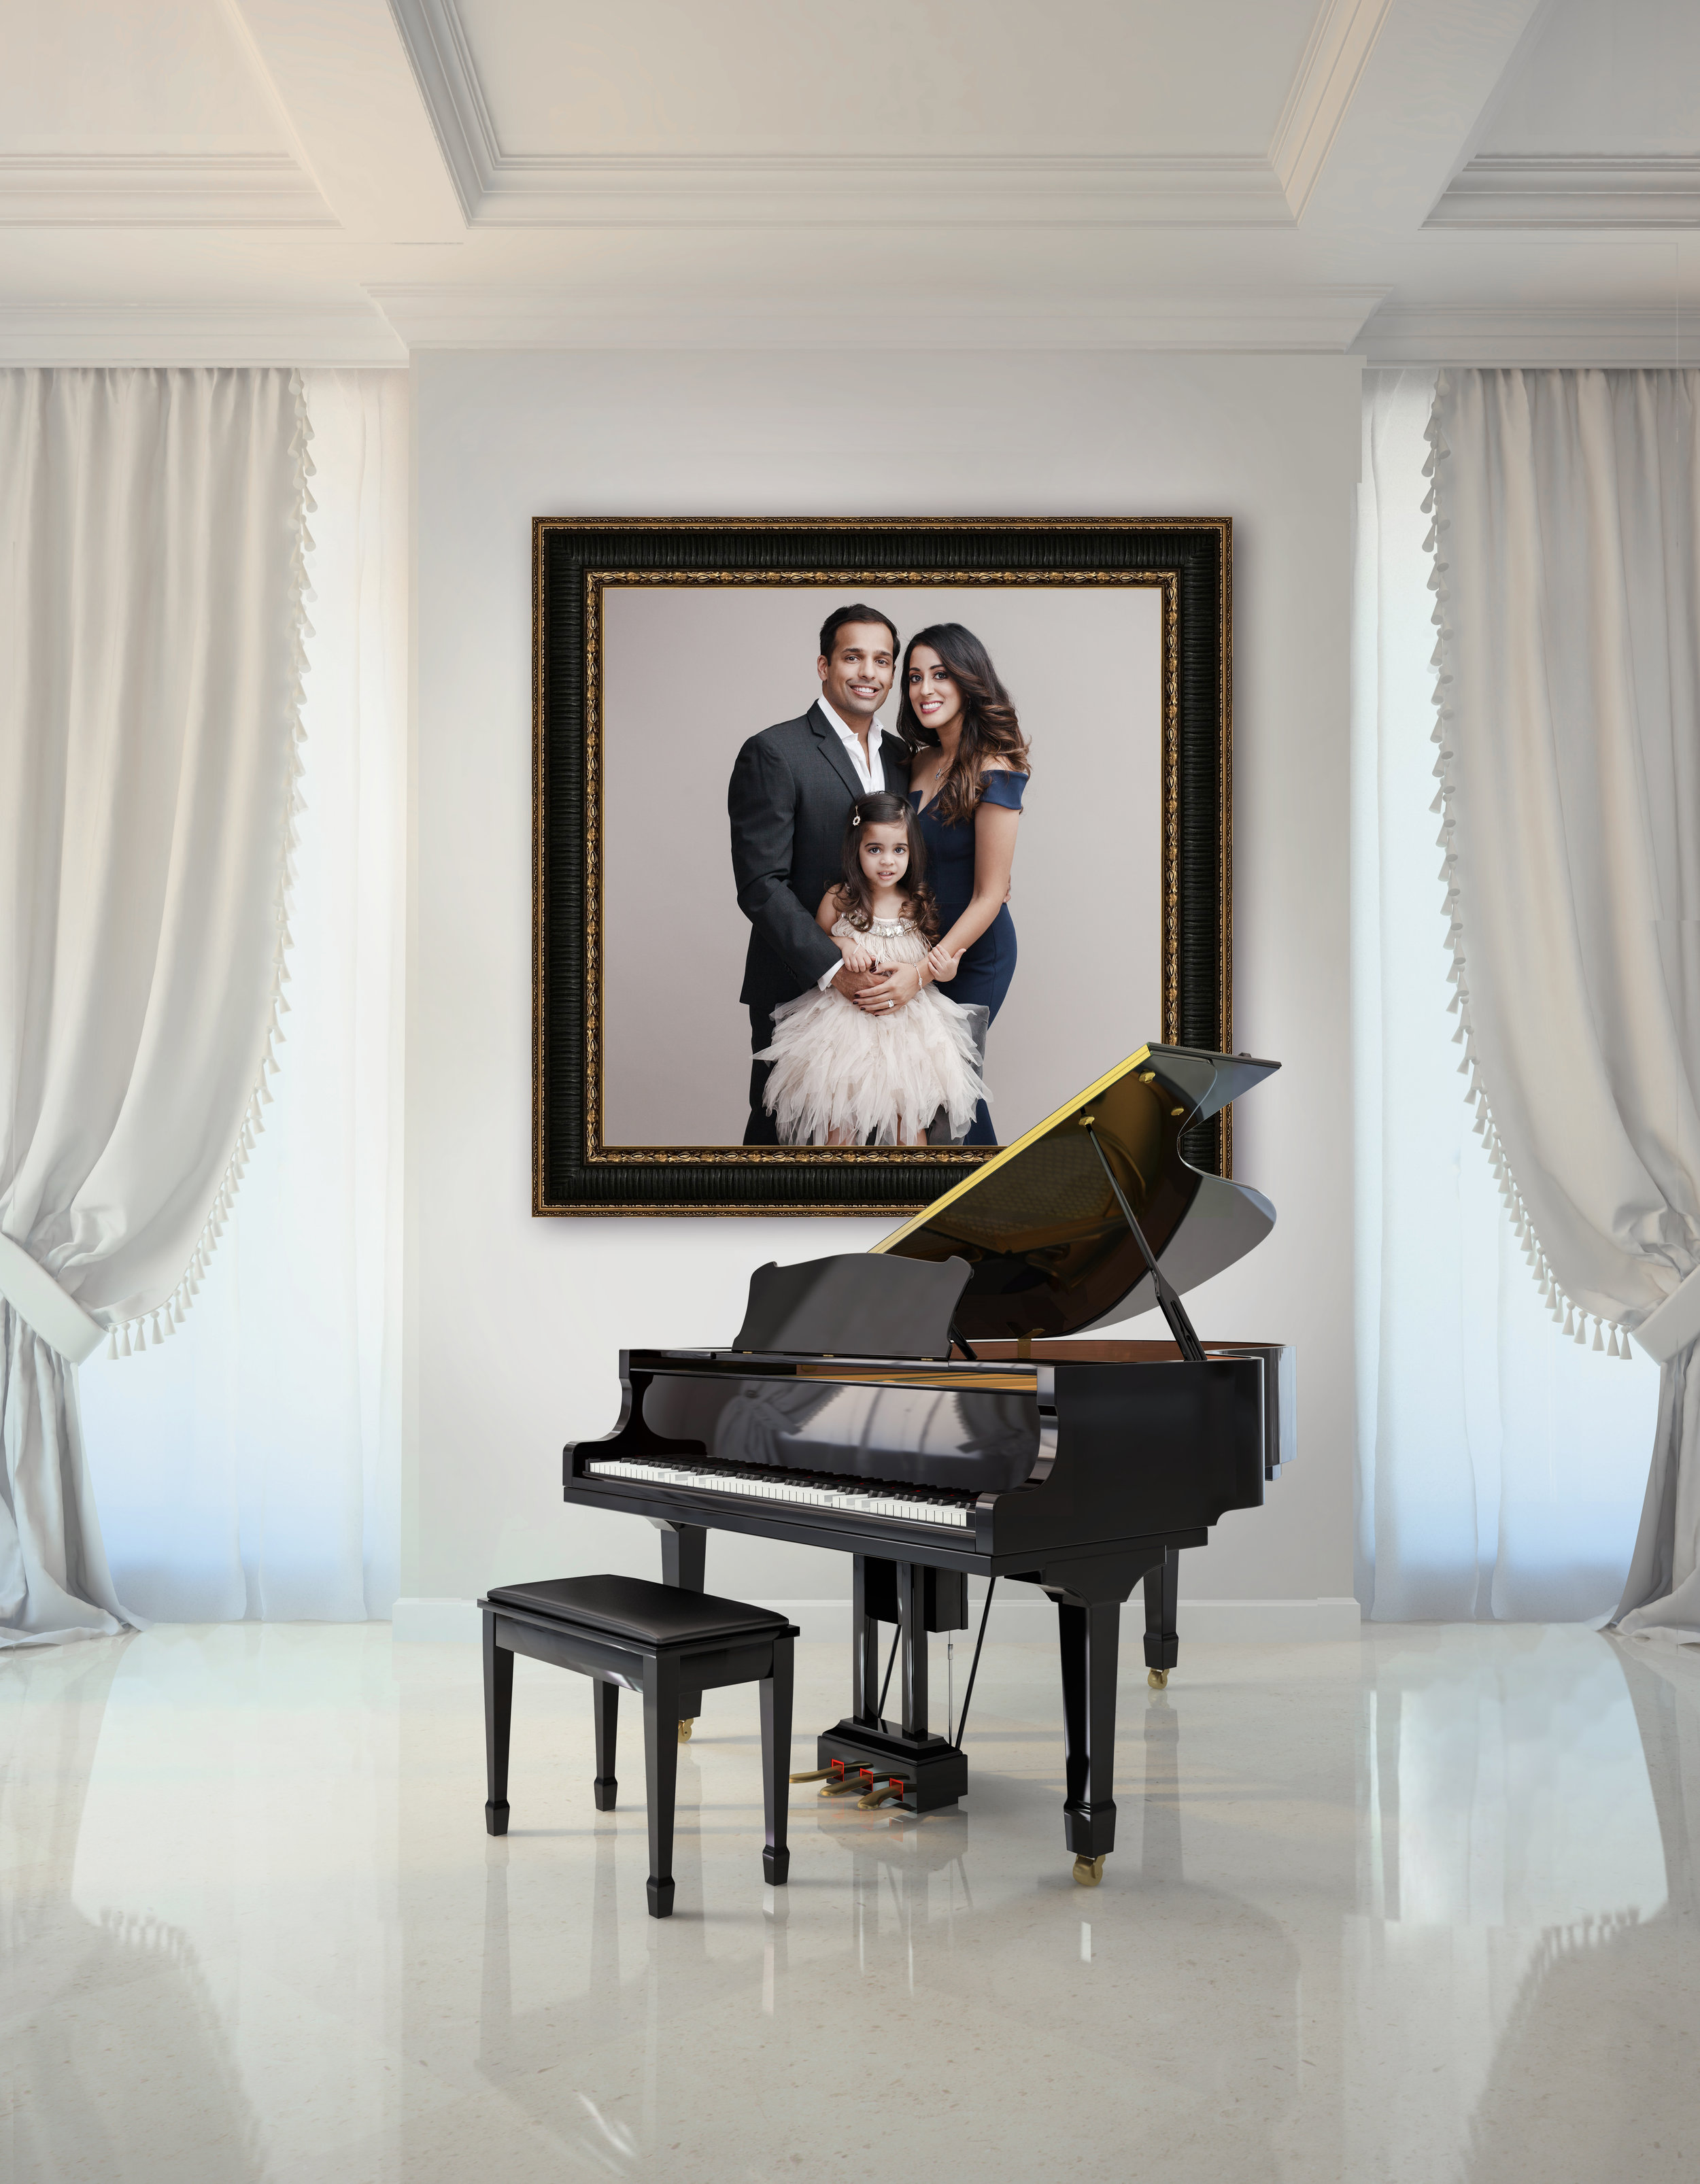 Room in classic style with black piano